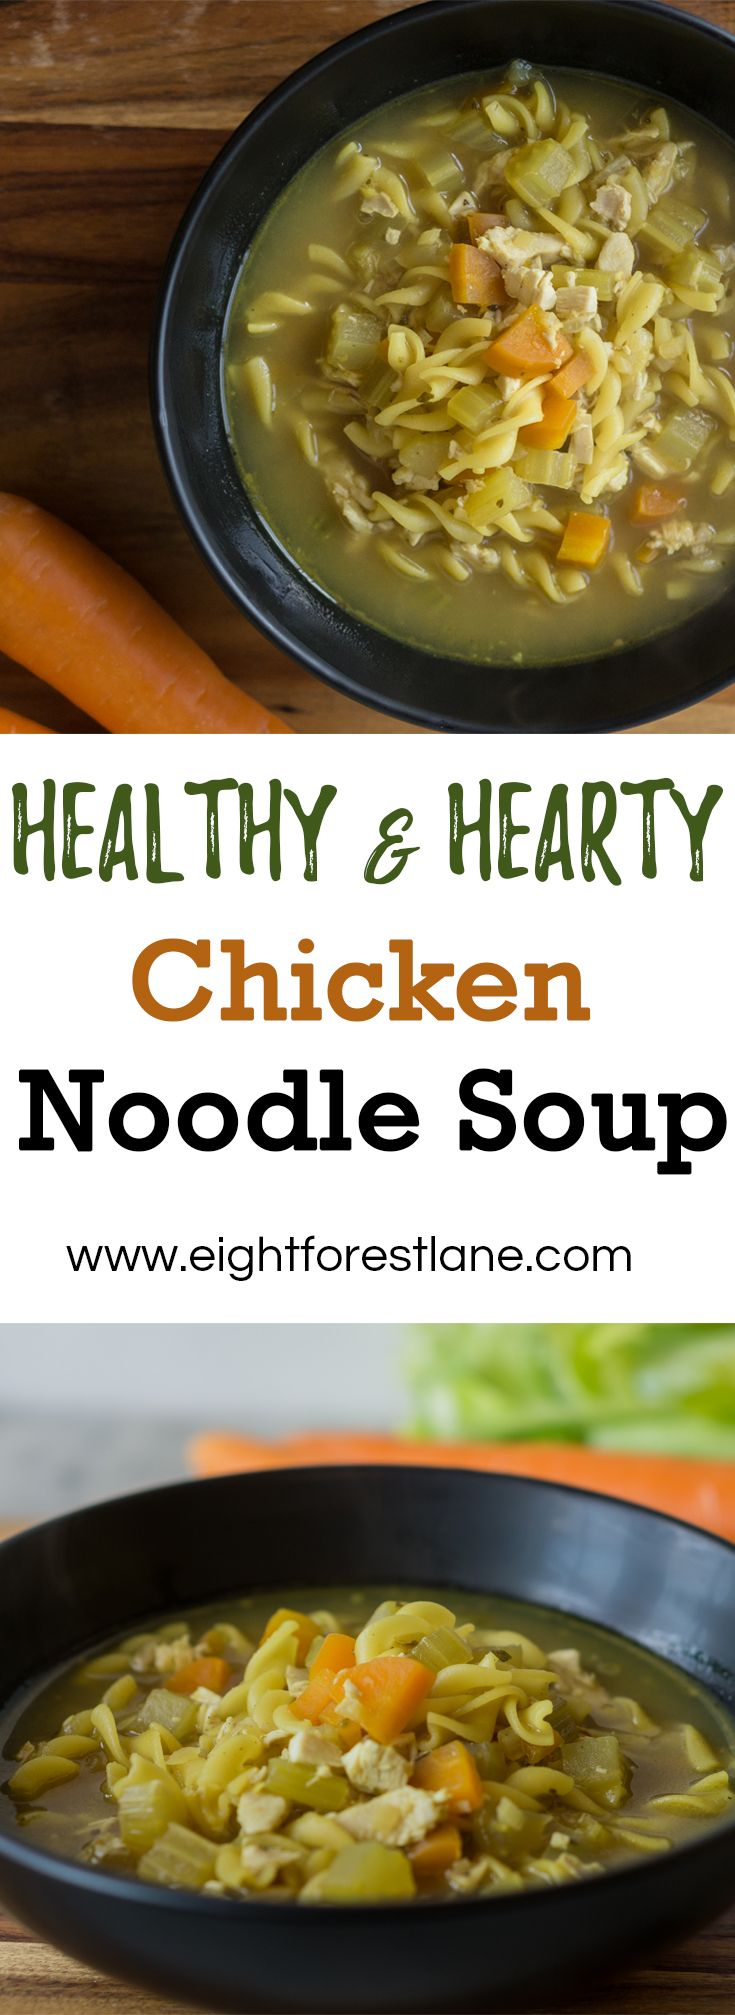 Healthy & Hearty Chicken Noodle Soup